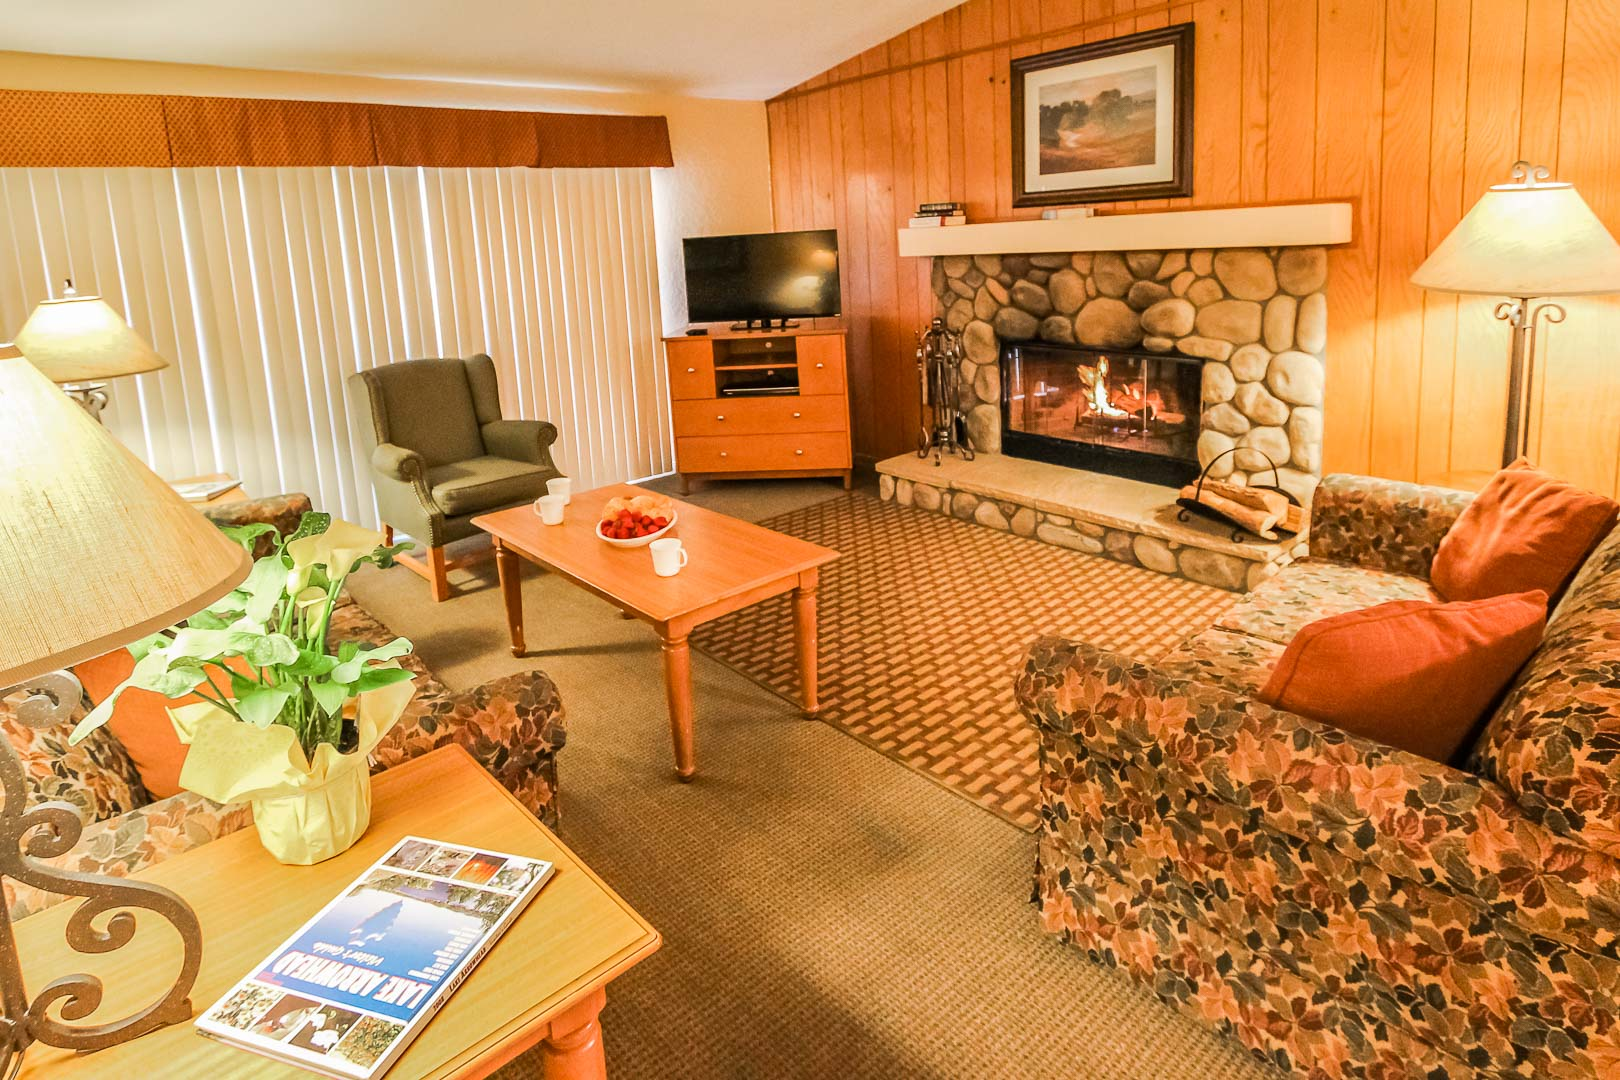 A charming living room area at VRI's Lake Arrowhead Chalets in California.